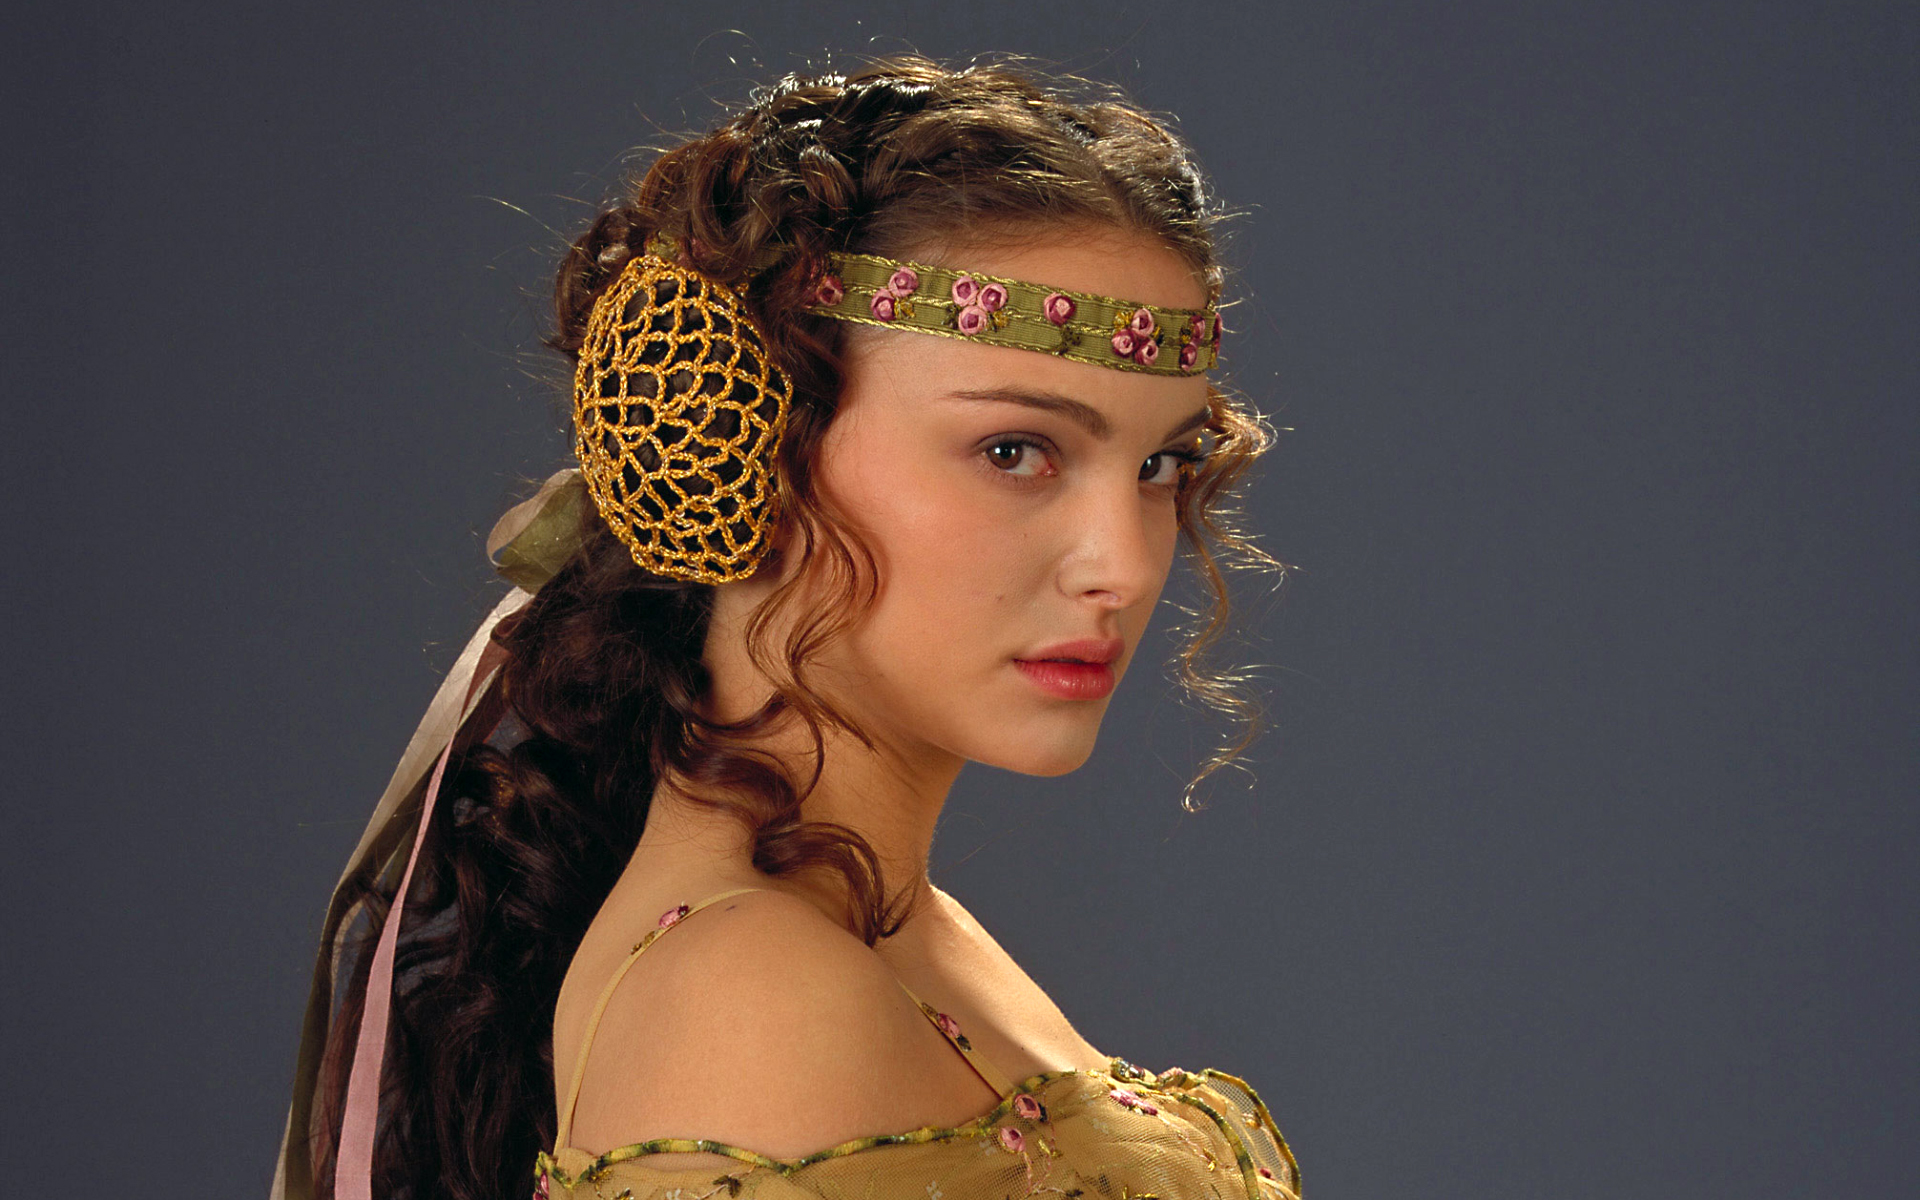 Women Star Wars Natalie Portman Wallpaper 1920x1200 12558 Wallpaperup